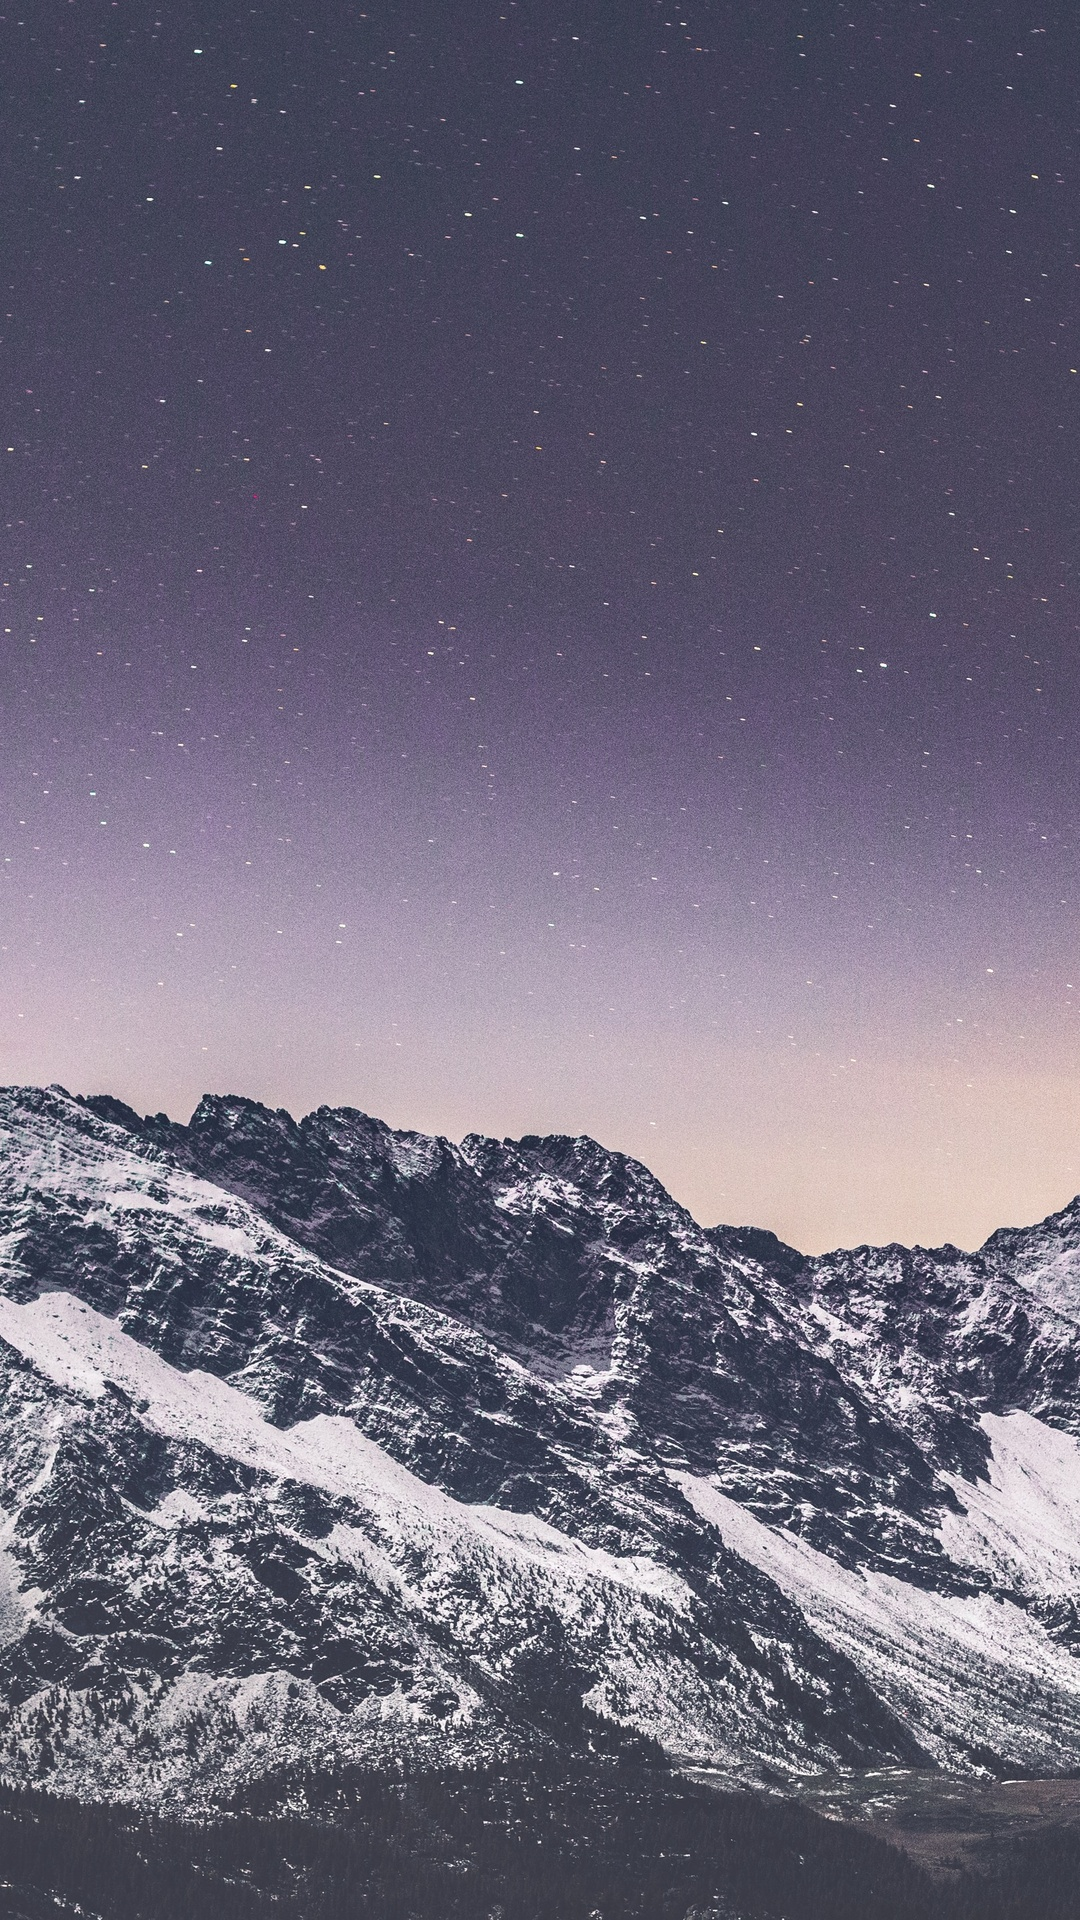 snow-covered-mountains-stars-5k-8m.jpg